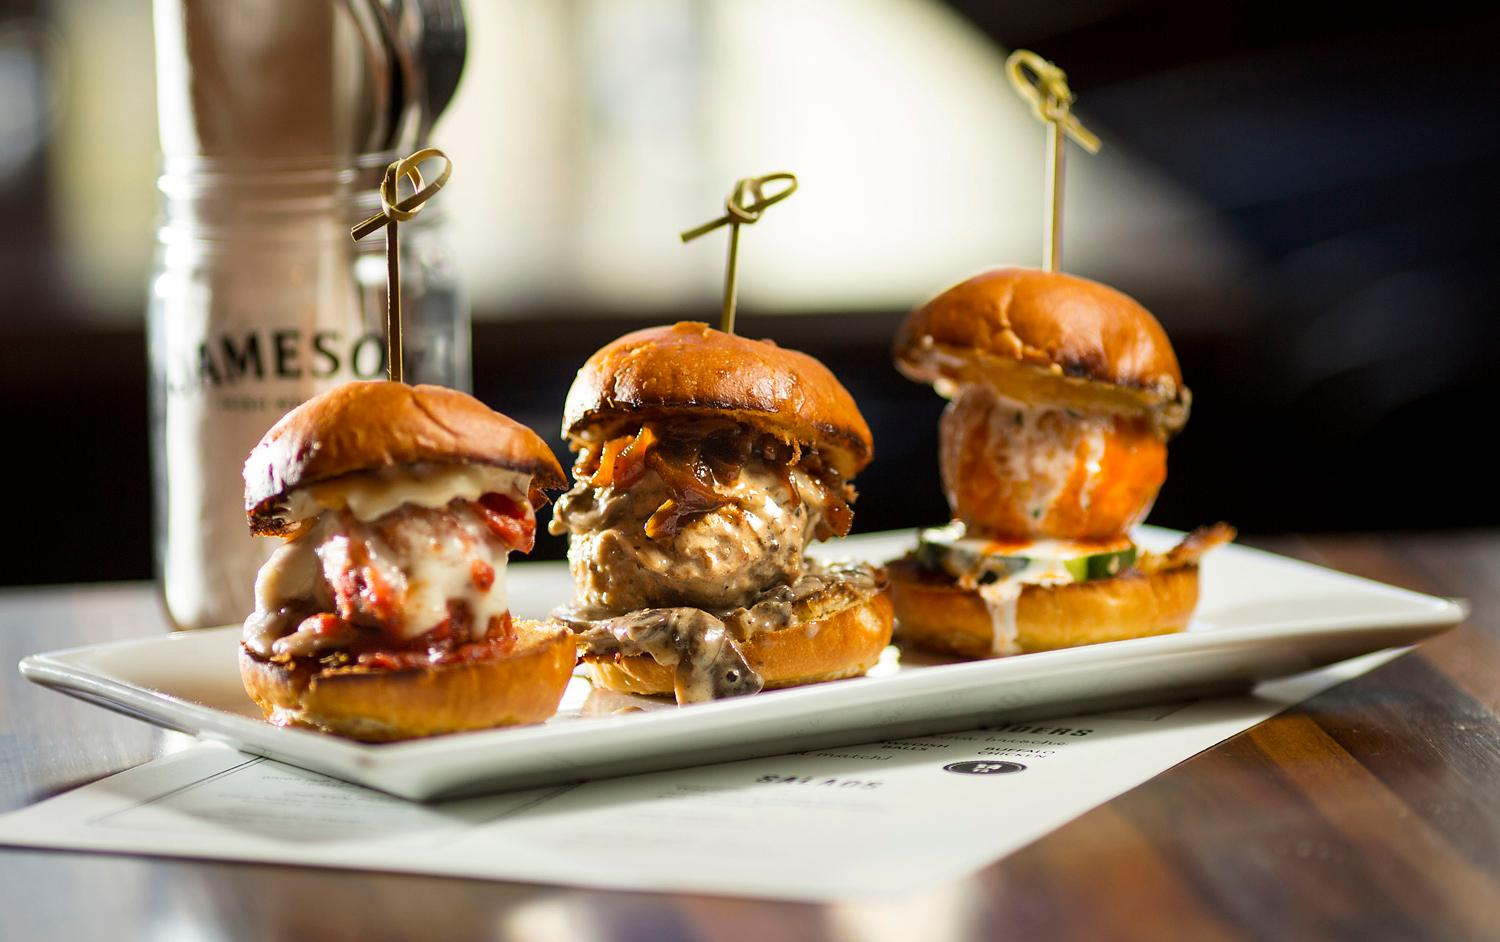 The Meatball Sliders come in three different styles (Jones Bros Original, Swedish Balls, and Buffalo Chicken), and are all served on Macrina brioche at Jones brothers & Co., located at 5449 Ballard Ave NW. (Sy Bean / Seattle Refined)